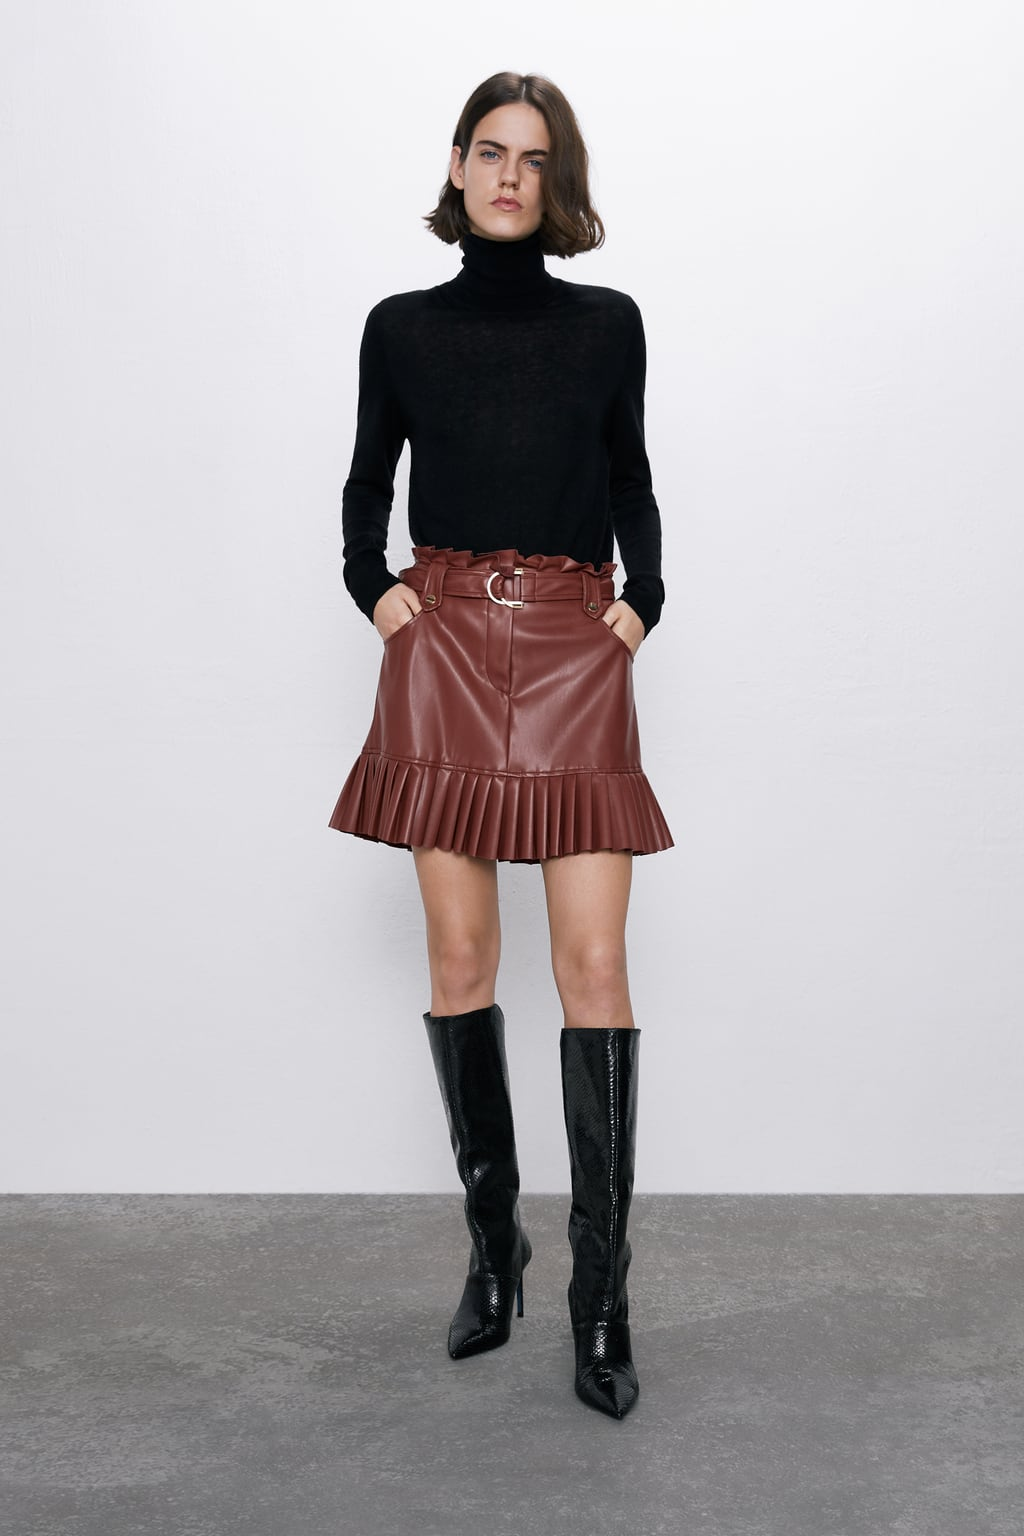 zara leather items 2019 fw jacket skirt shirts pants